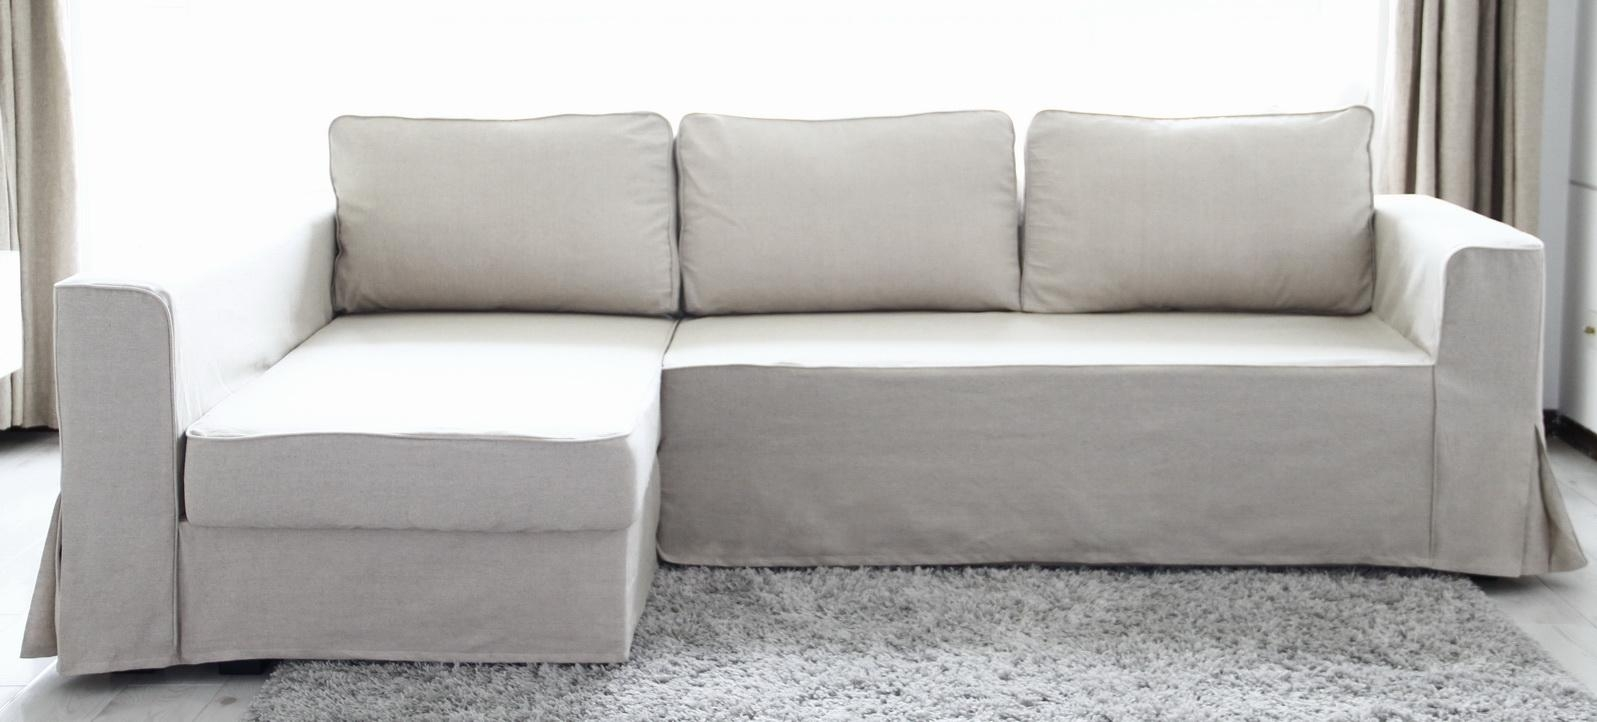 Sofas: Big Lots Futon | Ikea Sofa Bed | Ikea Couch Bed Intended For Big Lots Sofa Sleeper (View 13 of 20)